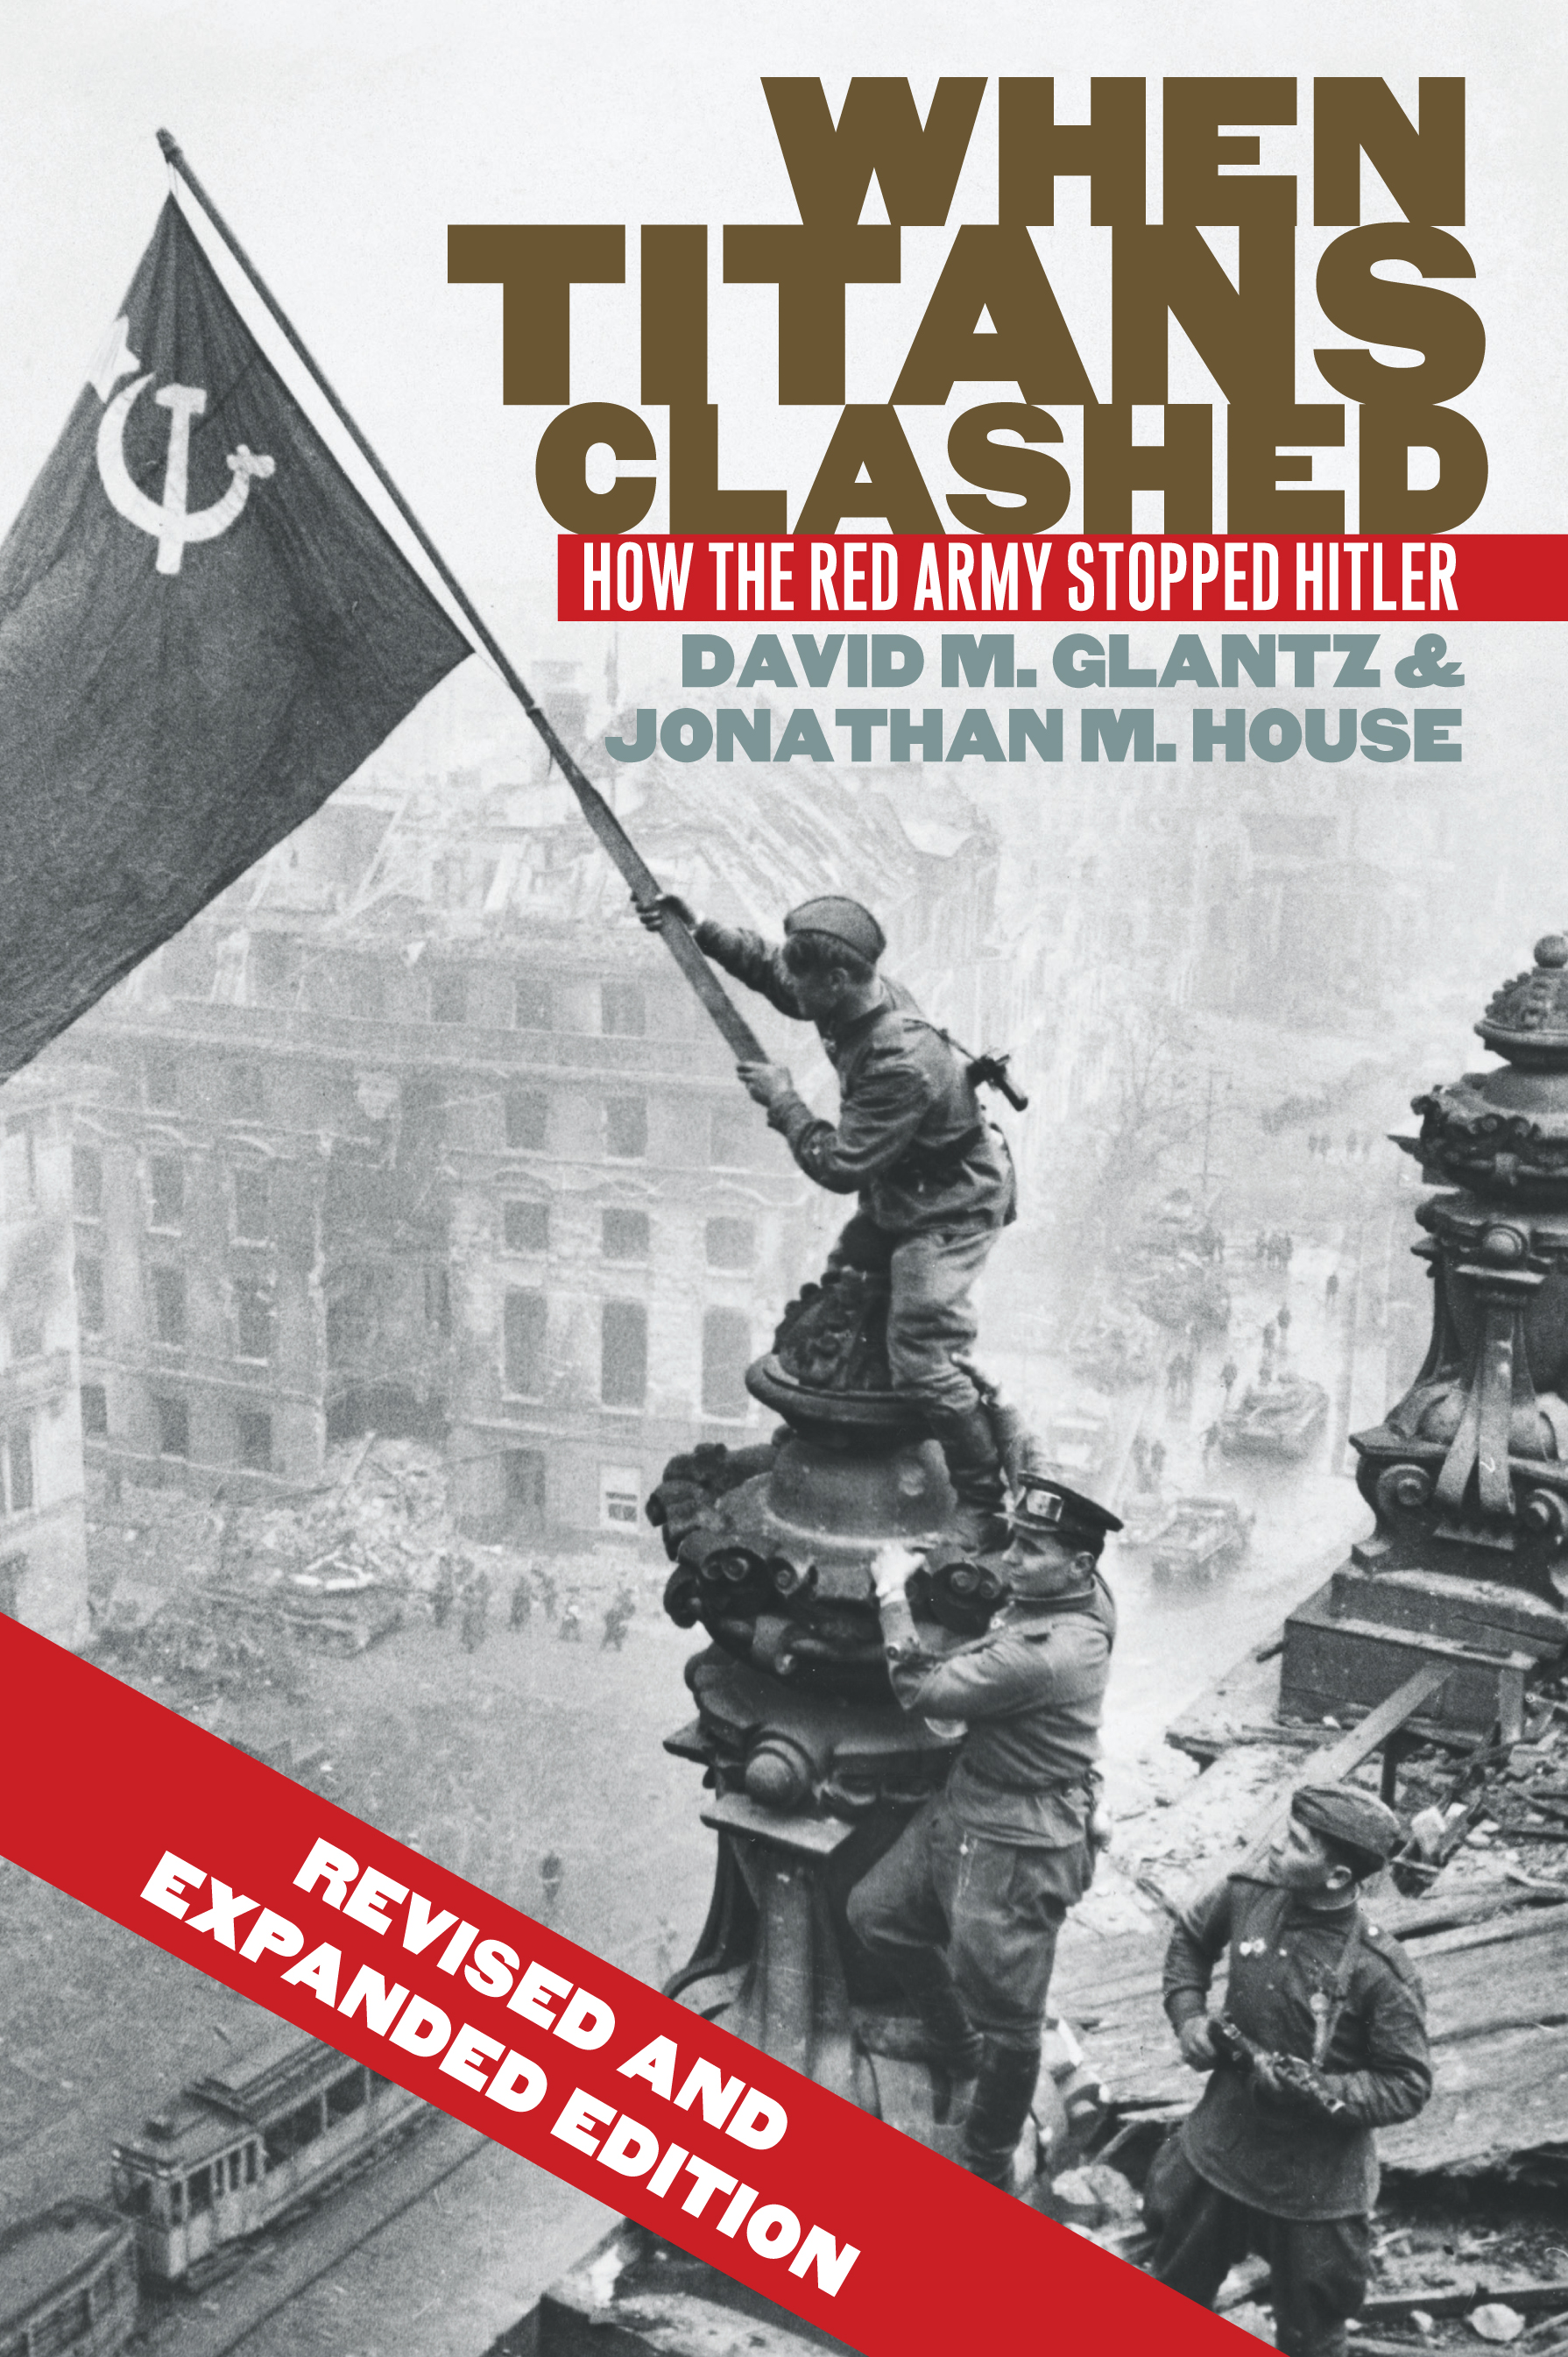 Otd In Additional Reading On Wwii